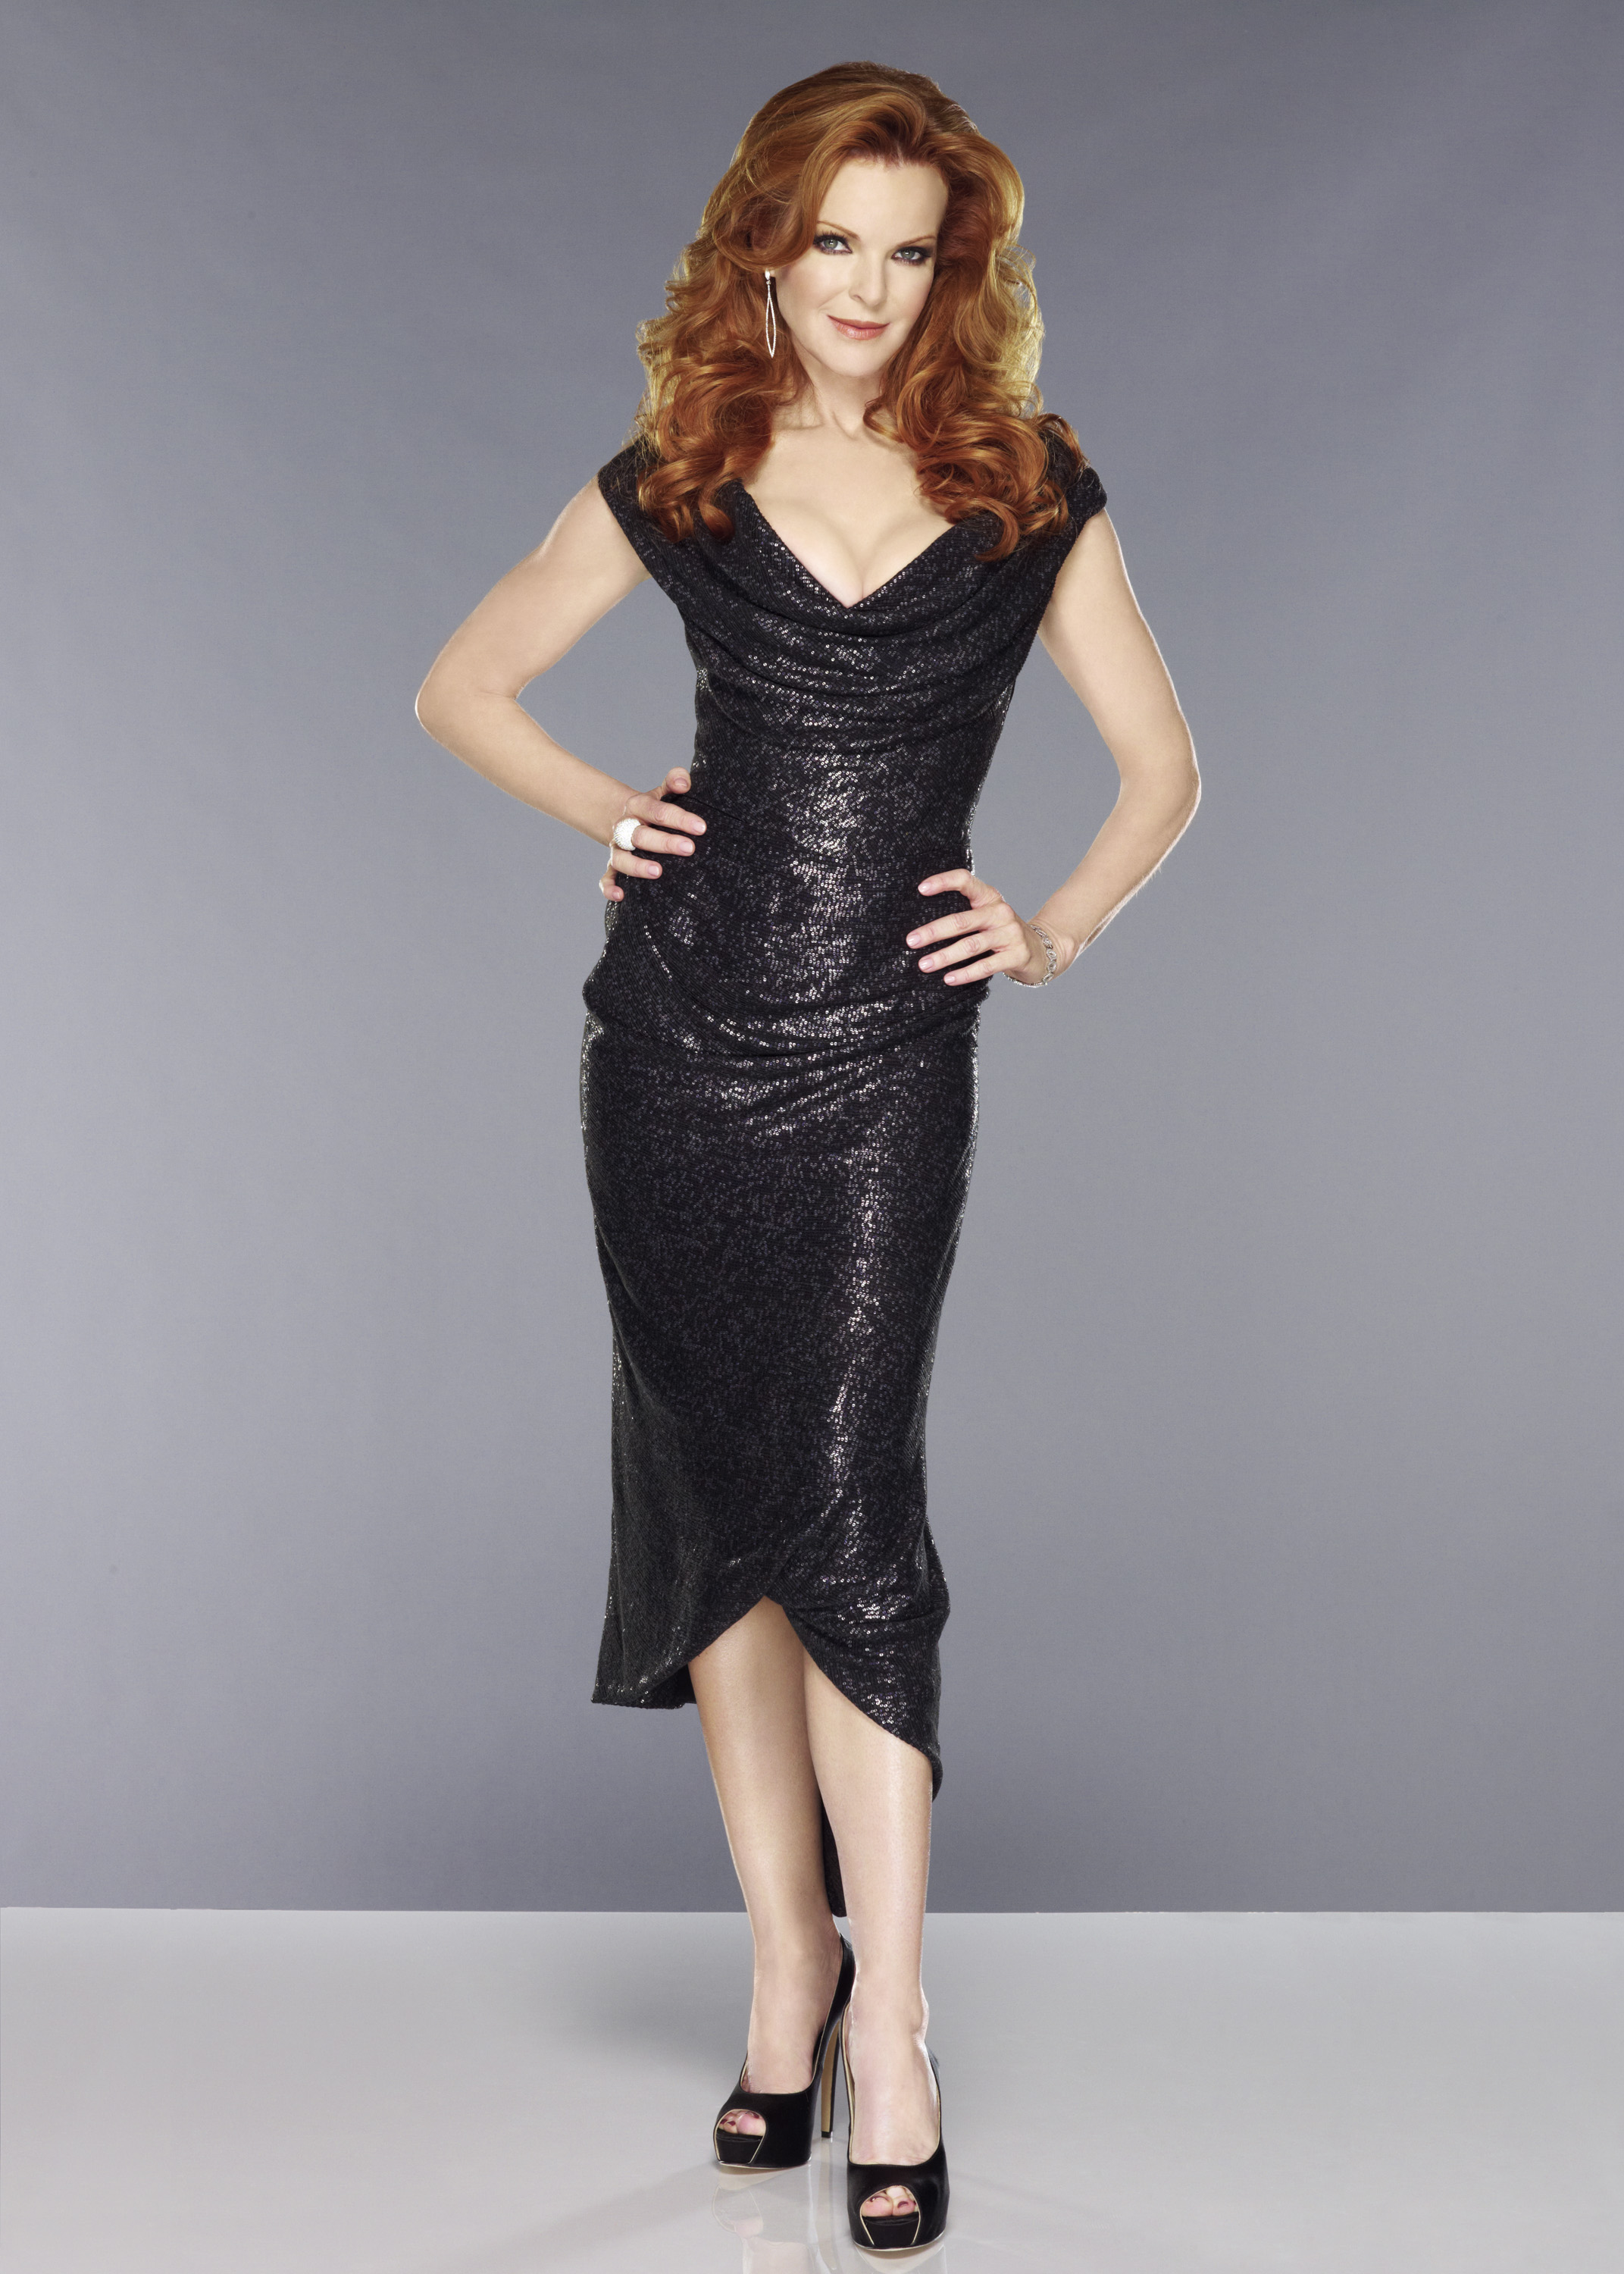 from Korbin marcia cross gay desperate housewives